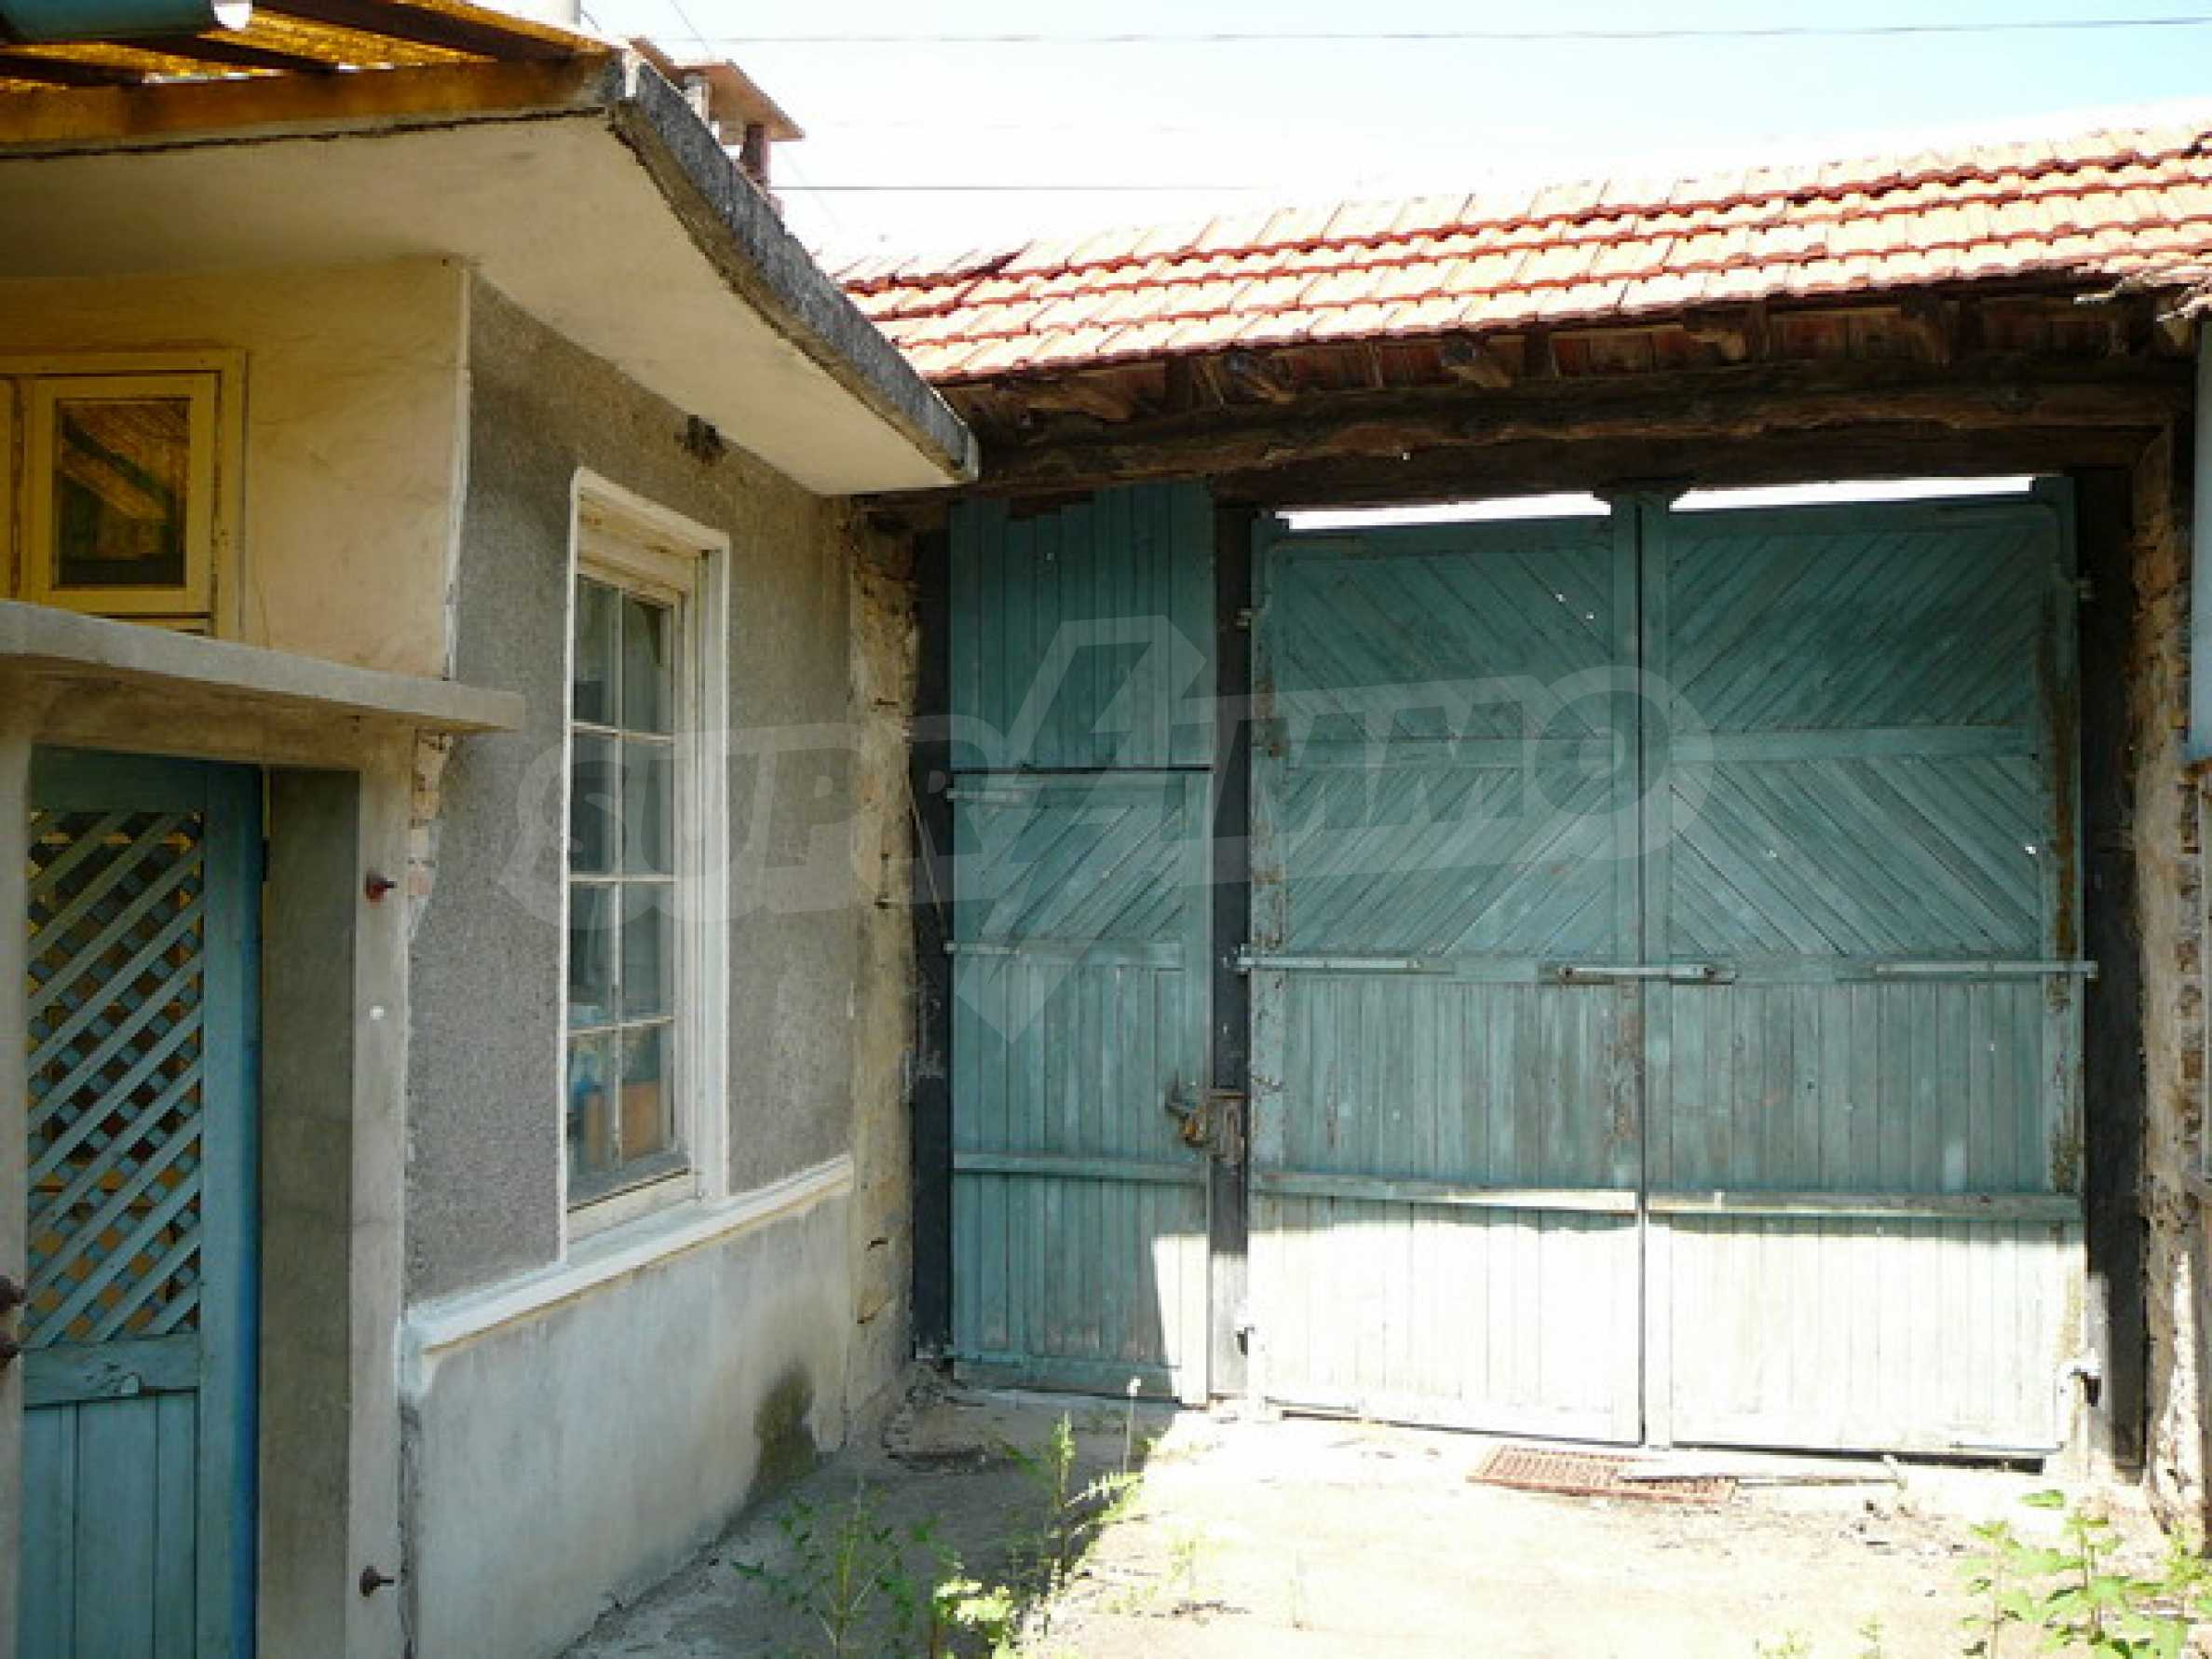 House for sale in a village close to Veliko Tarnovo 41